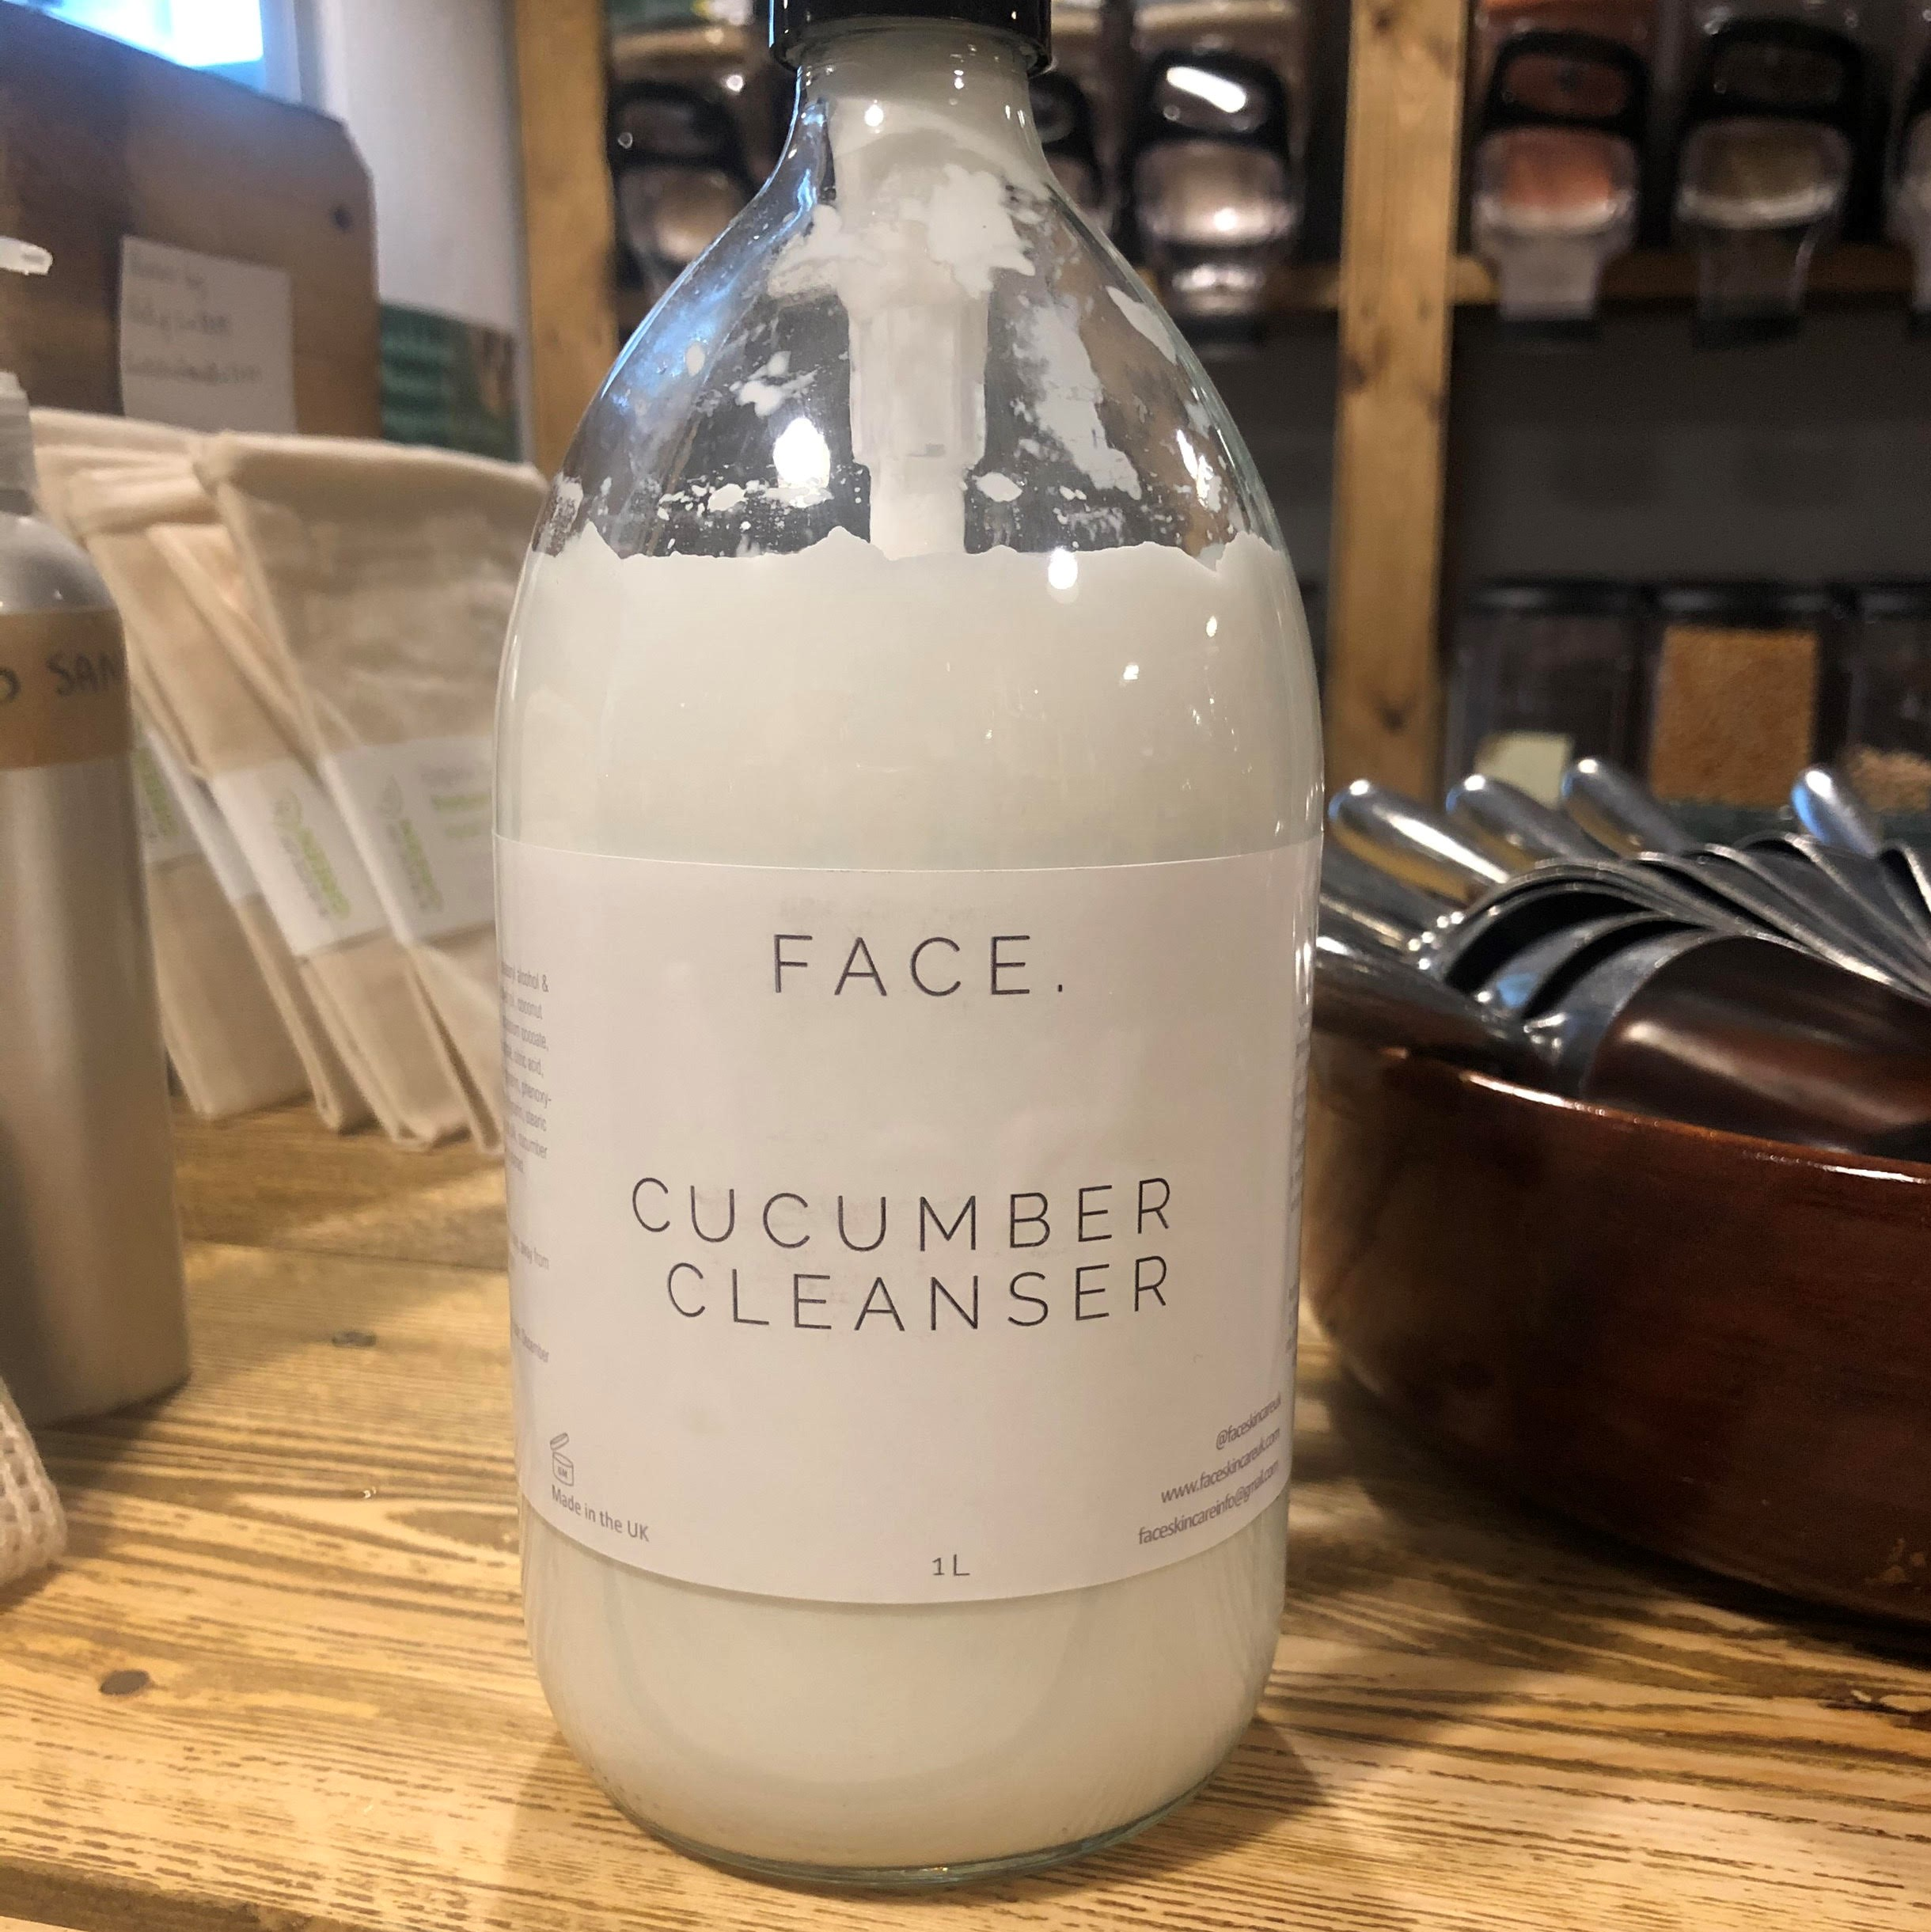 Cucumber Cleanser (Refill) by FACE.